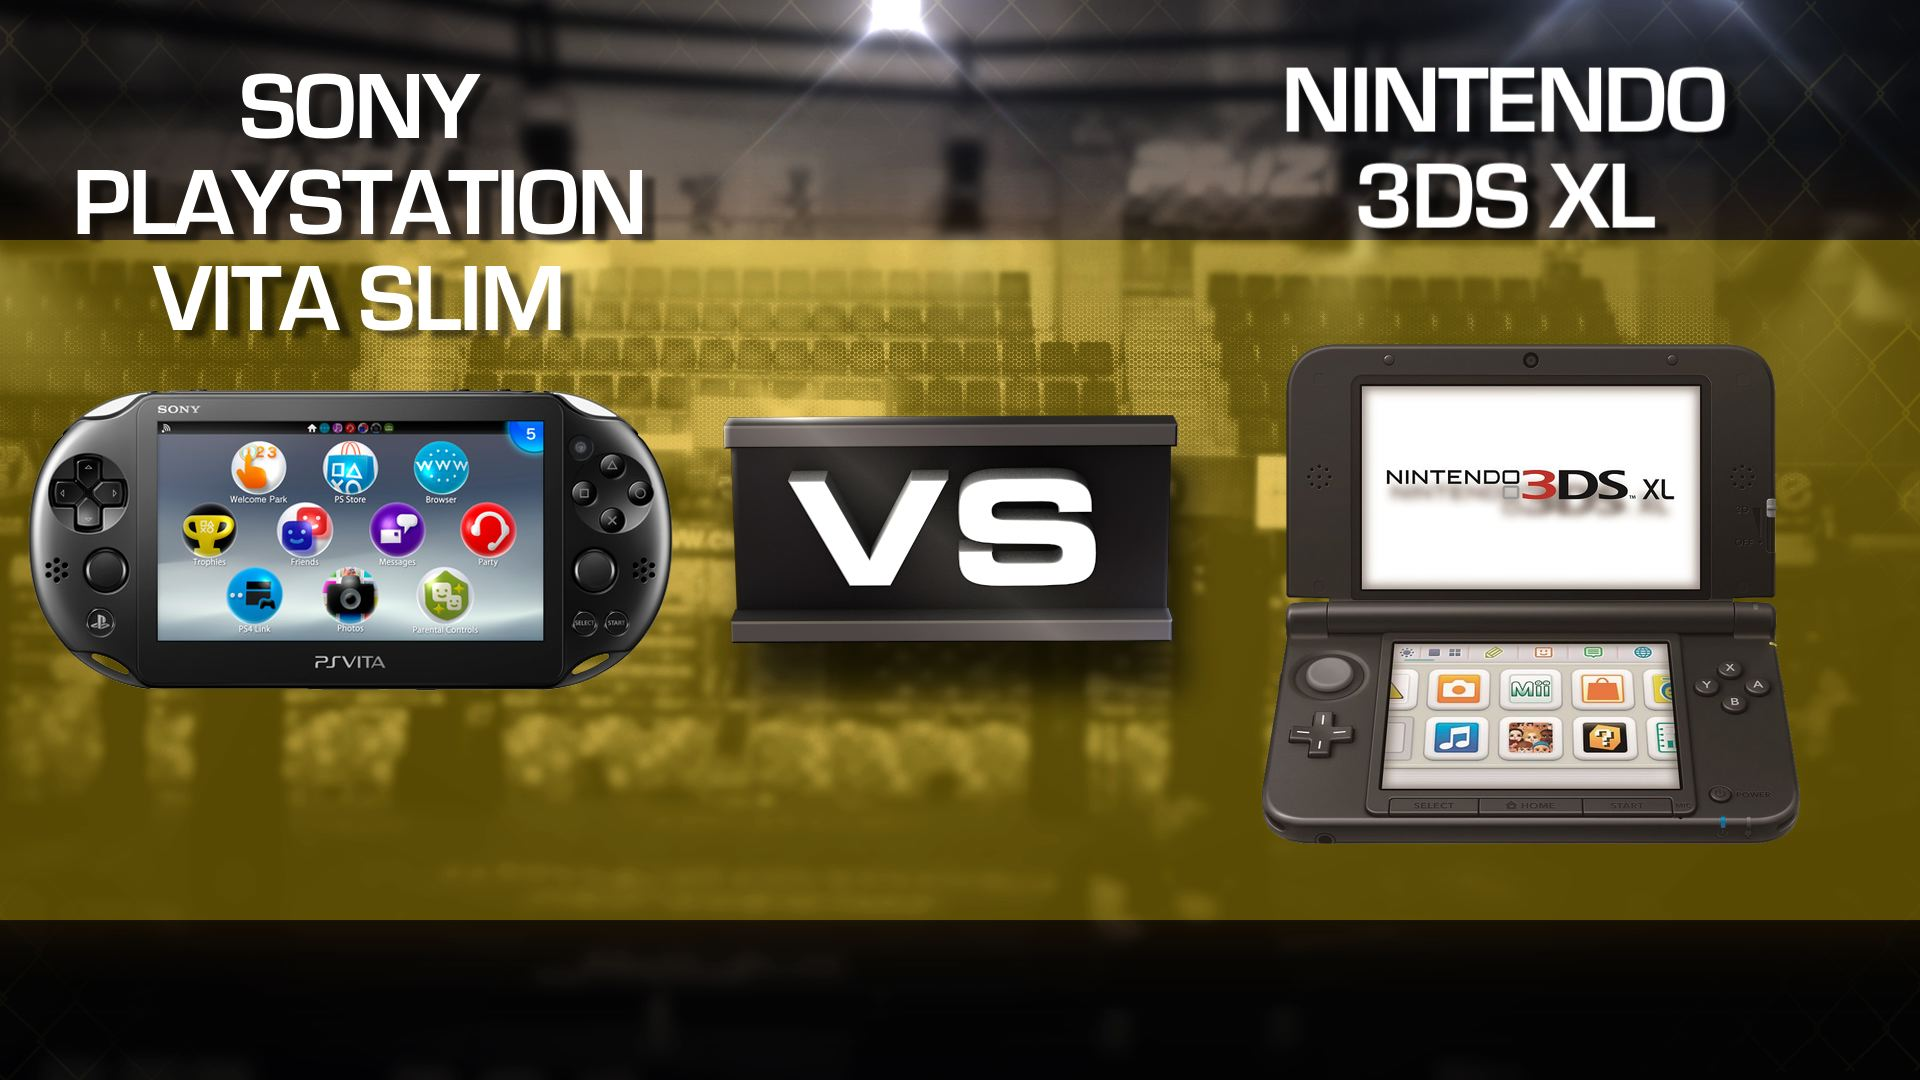 Video: Sony PS Vita Slim vs Nintendo 3DS XL